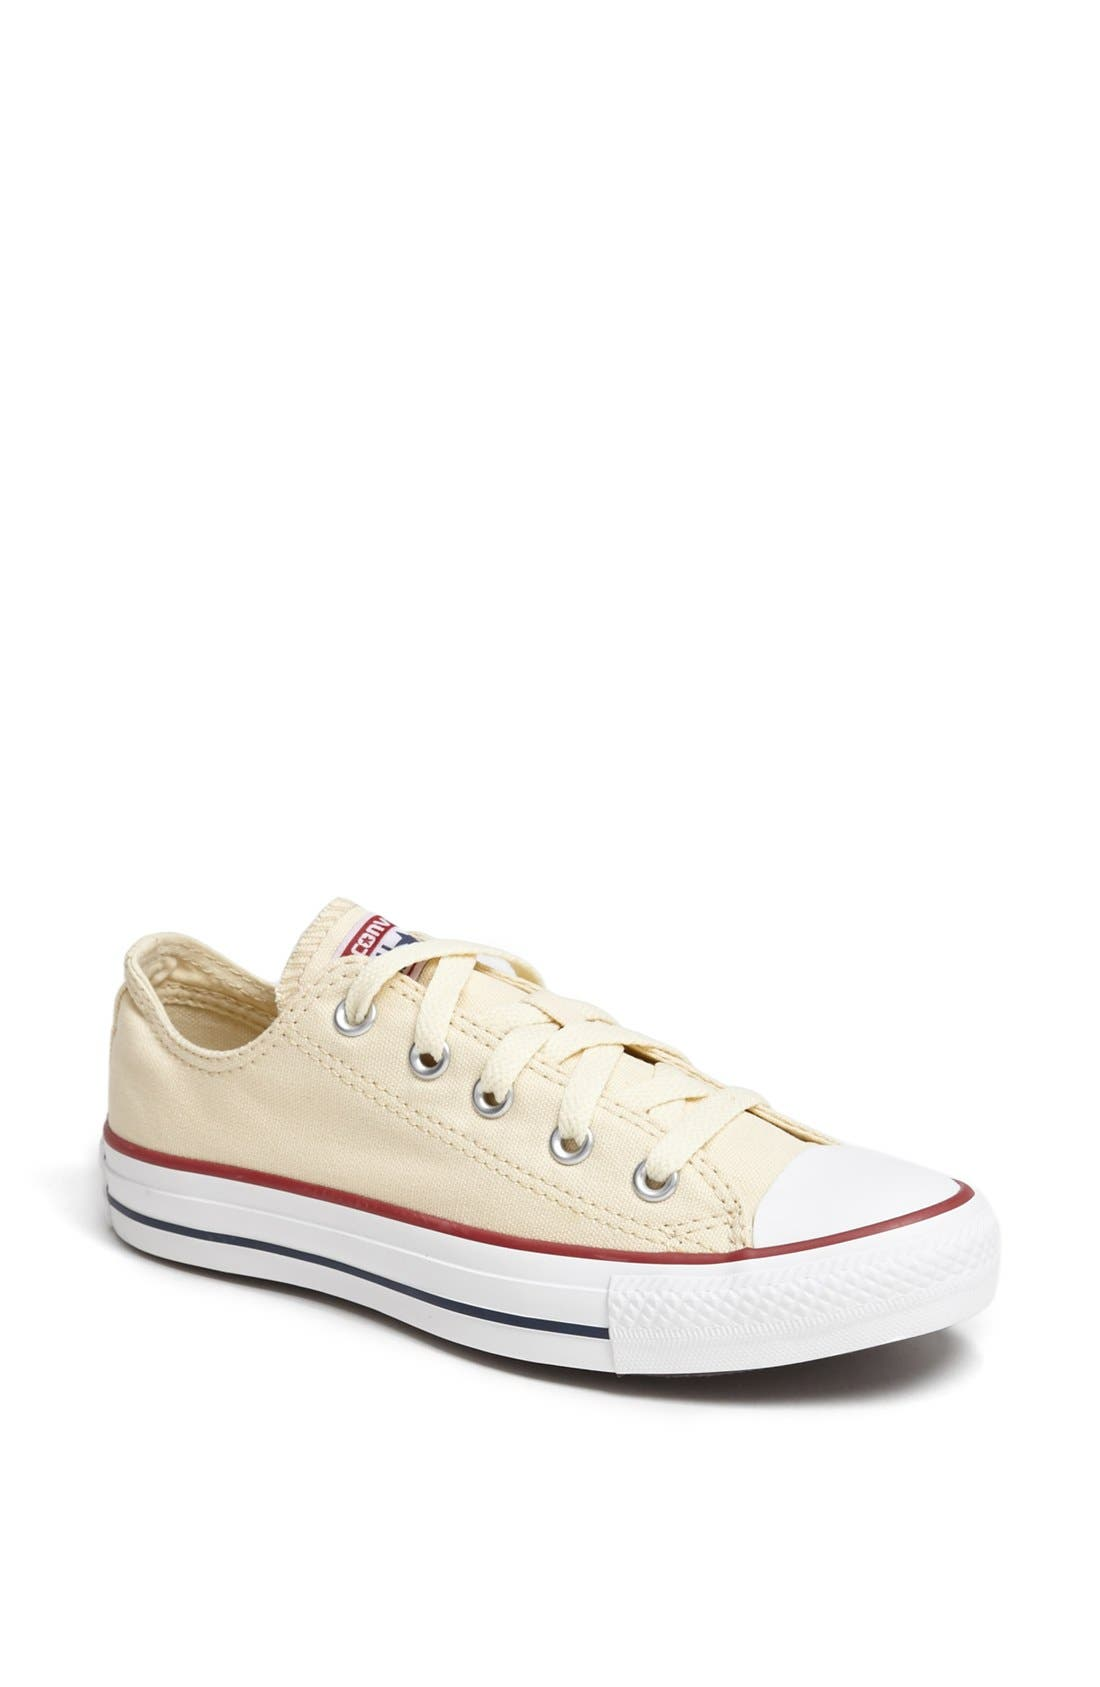 Alternate Image 1 Selected - Converse Chuck Taylor® All Star® 'Ox' Sneaker (Women)